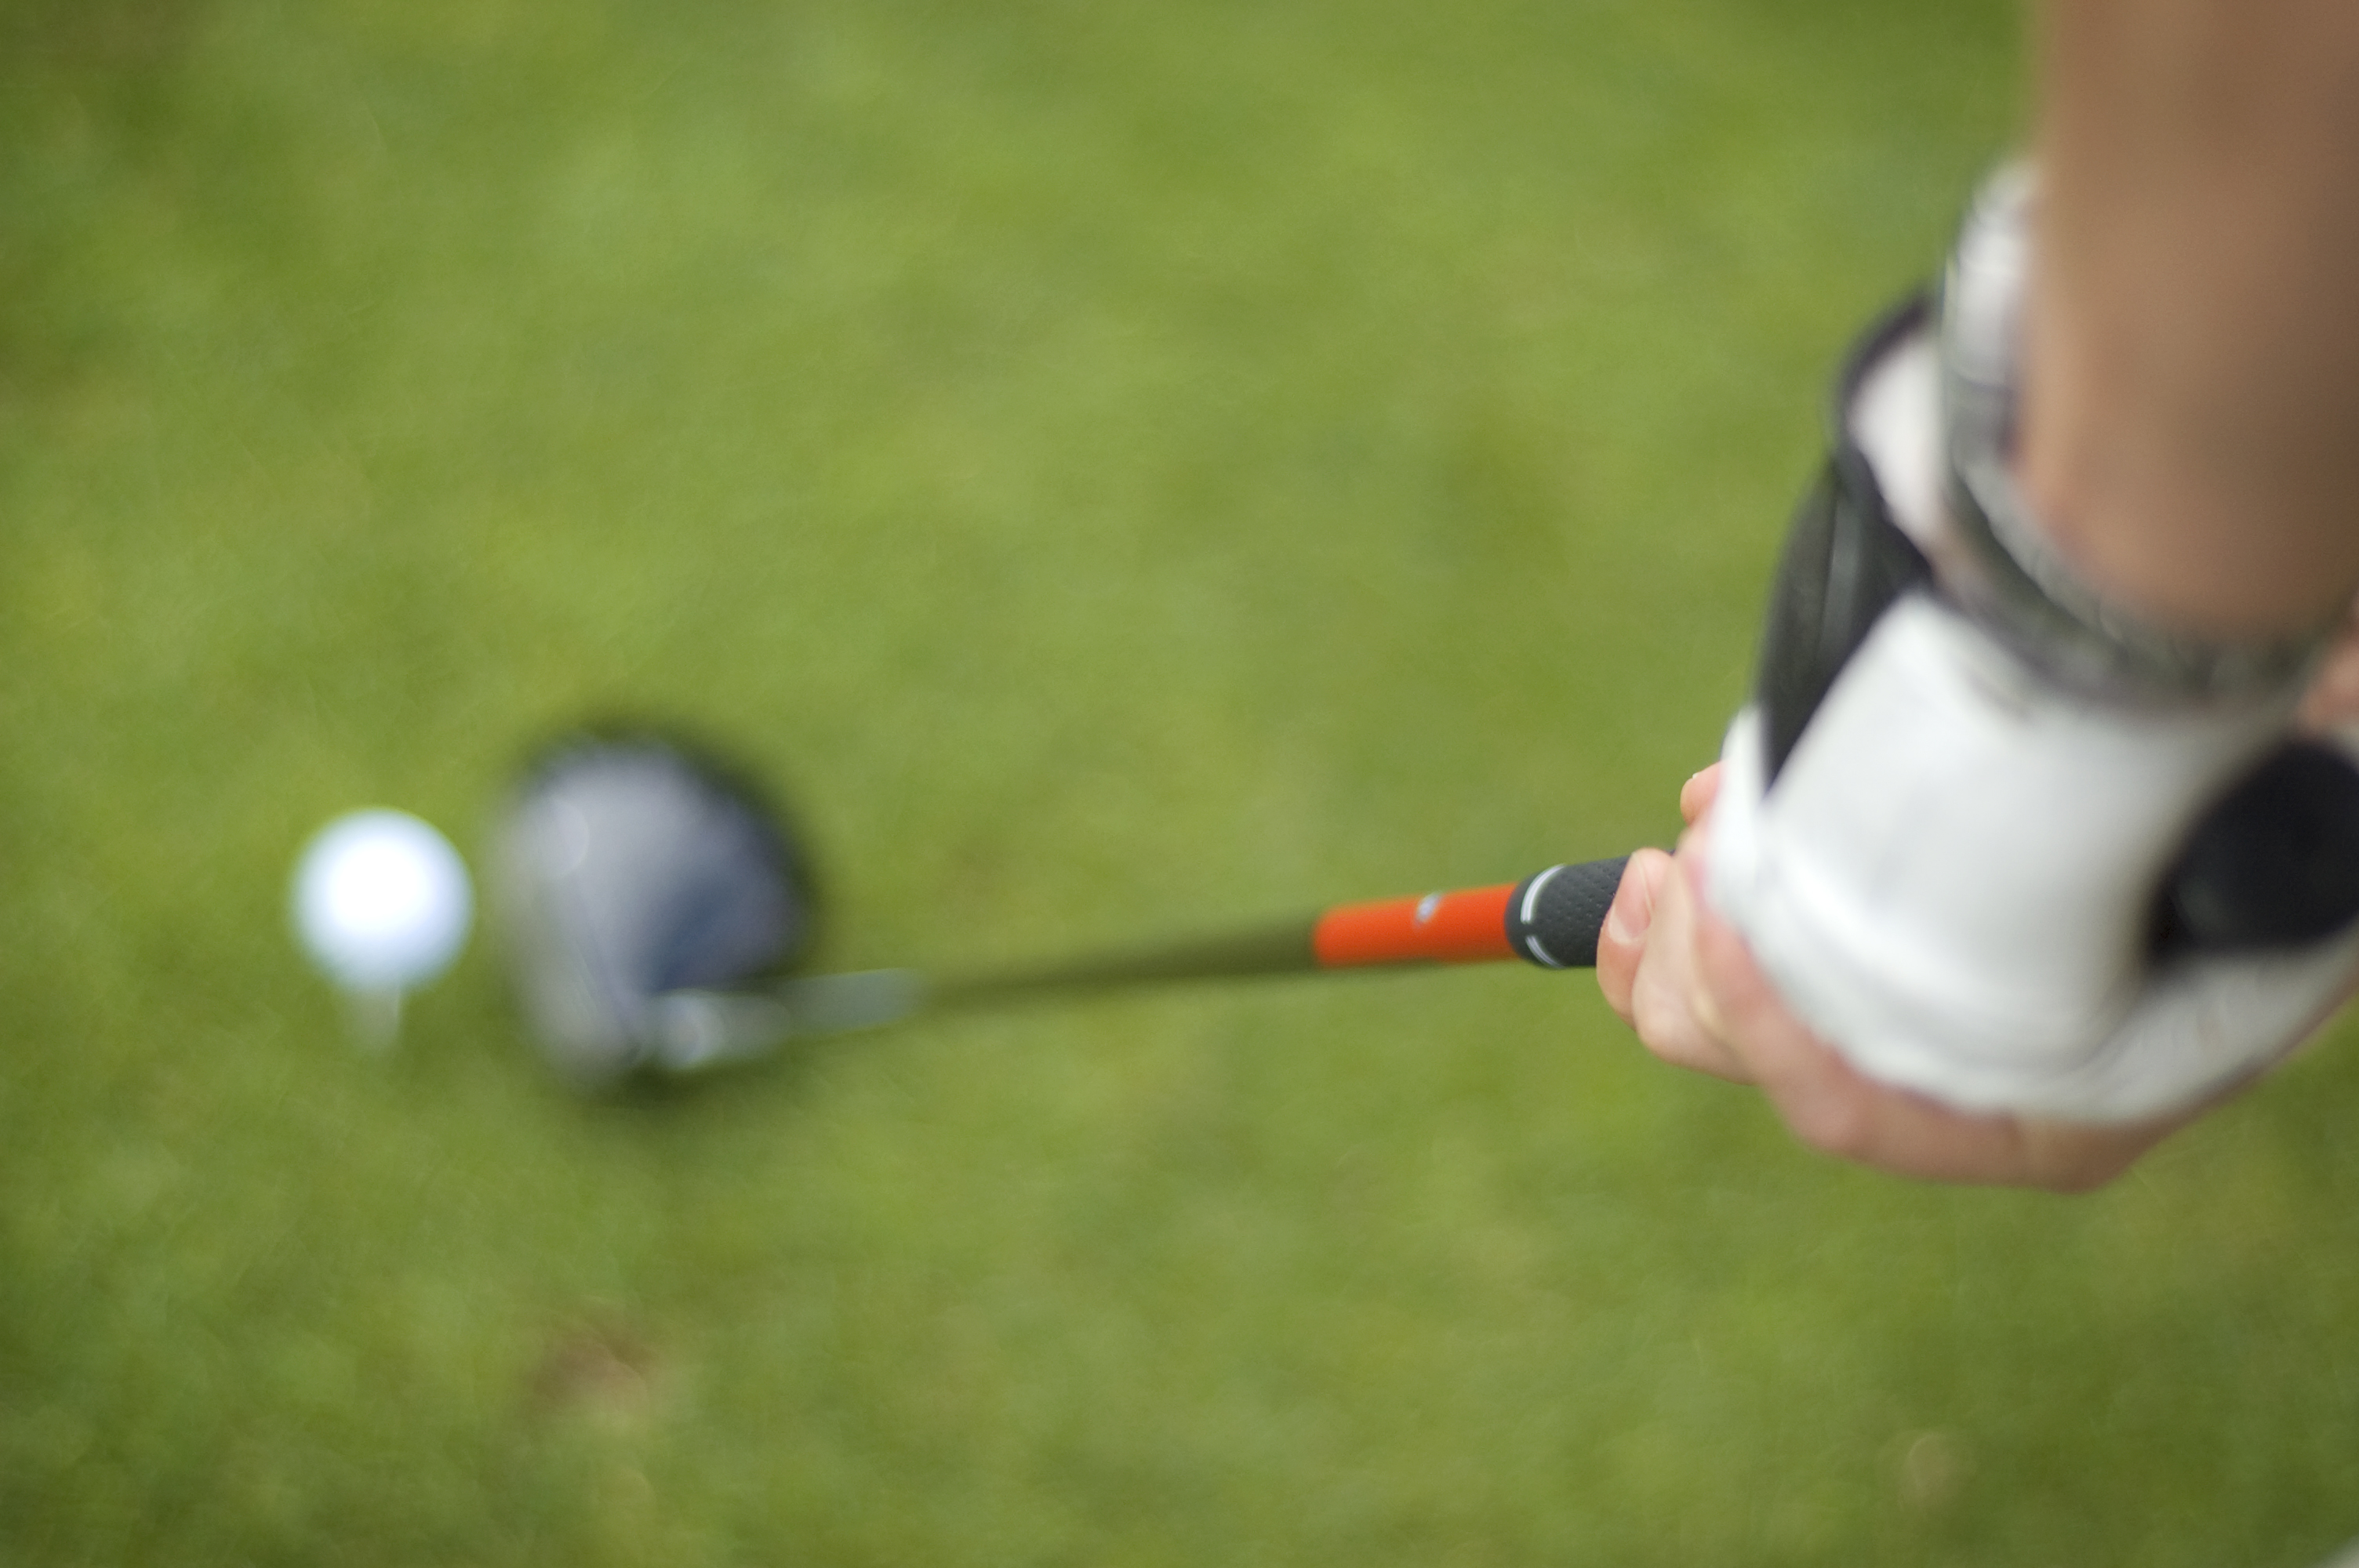 Just Swing: Does golf really have lessons for everything?